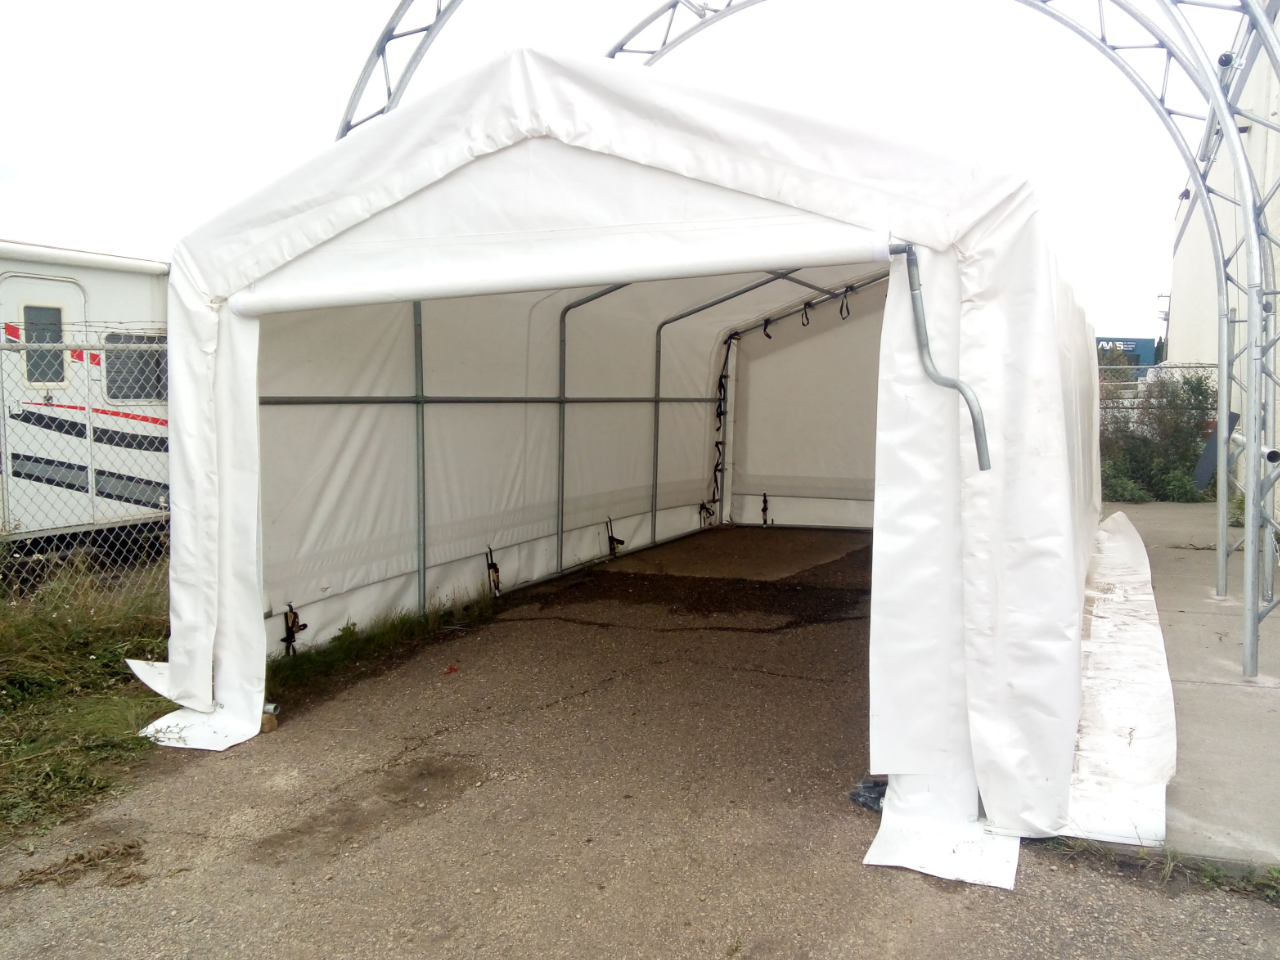 12' Wide Portable Garage by 24' long, with Rolled-Up Door